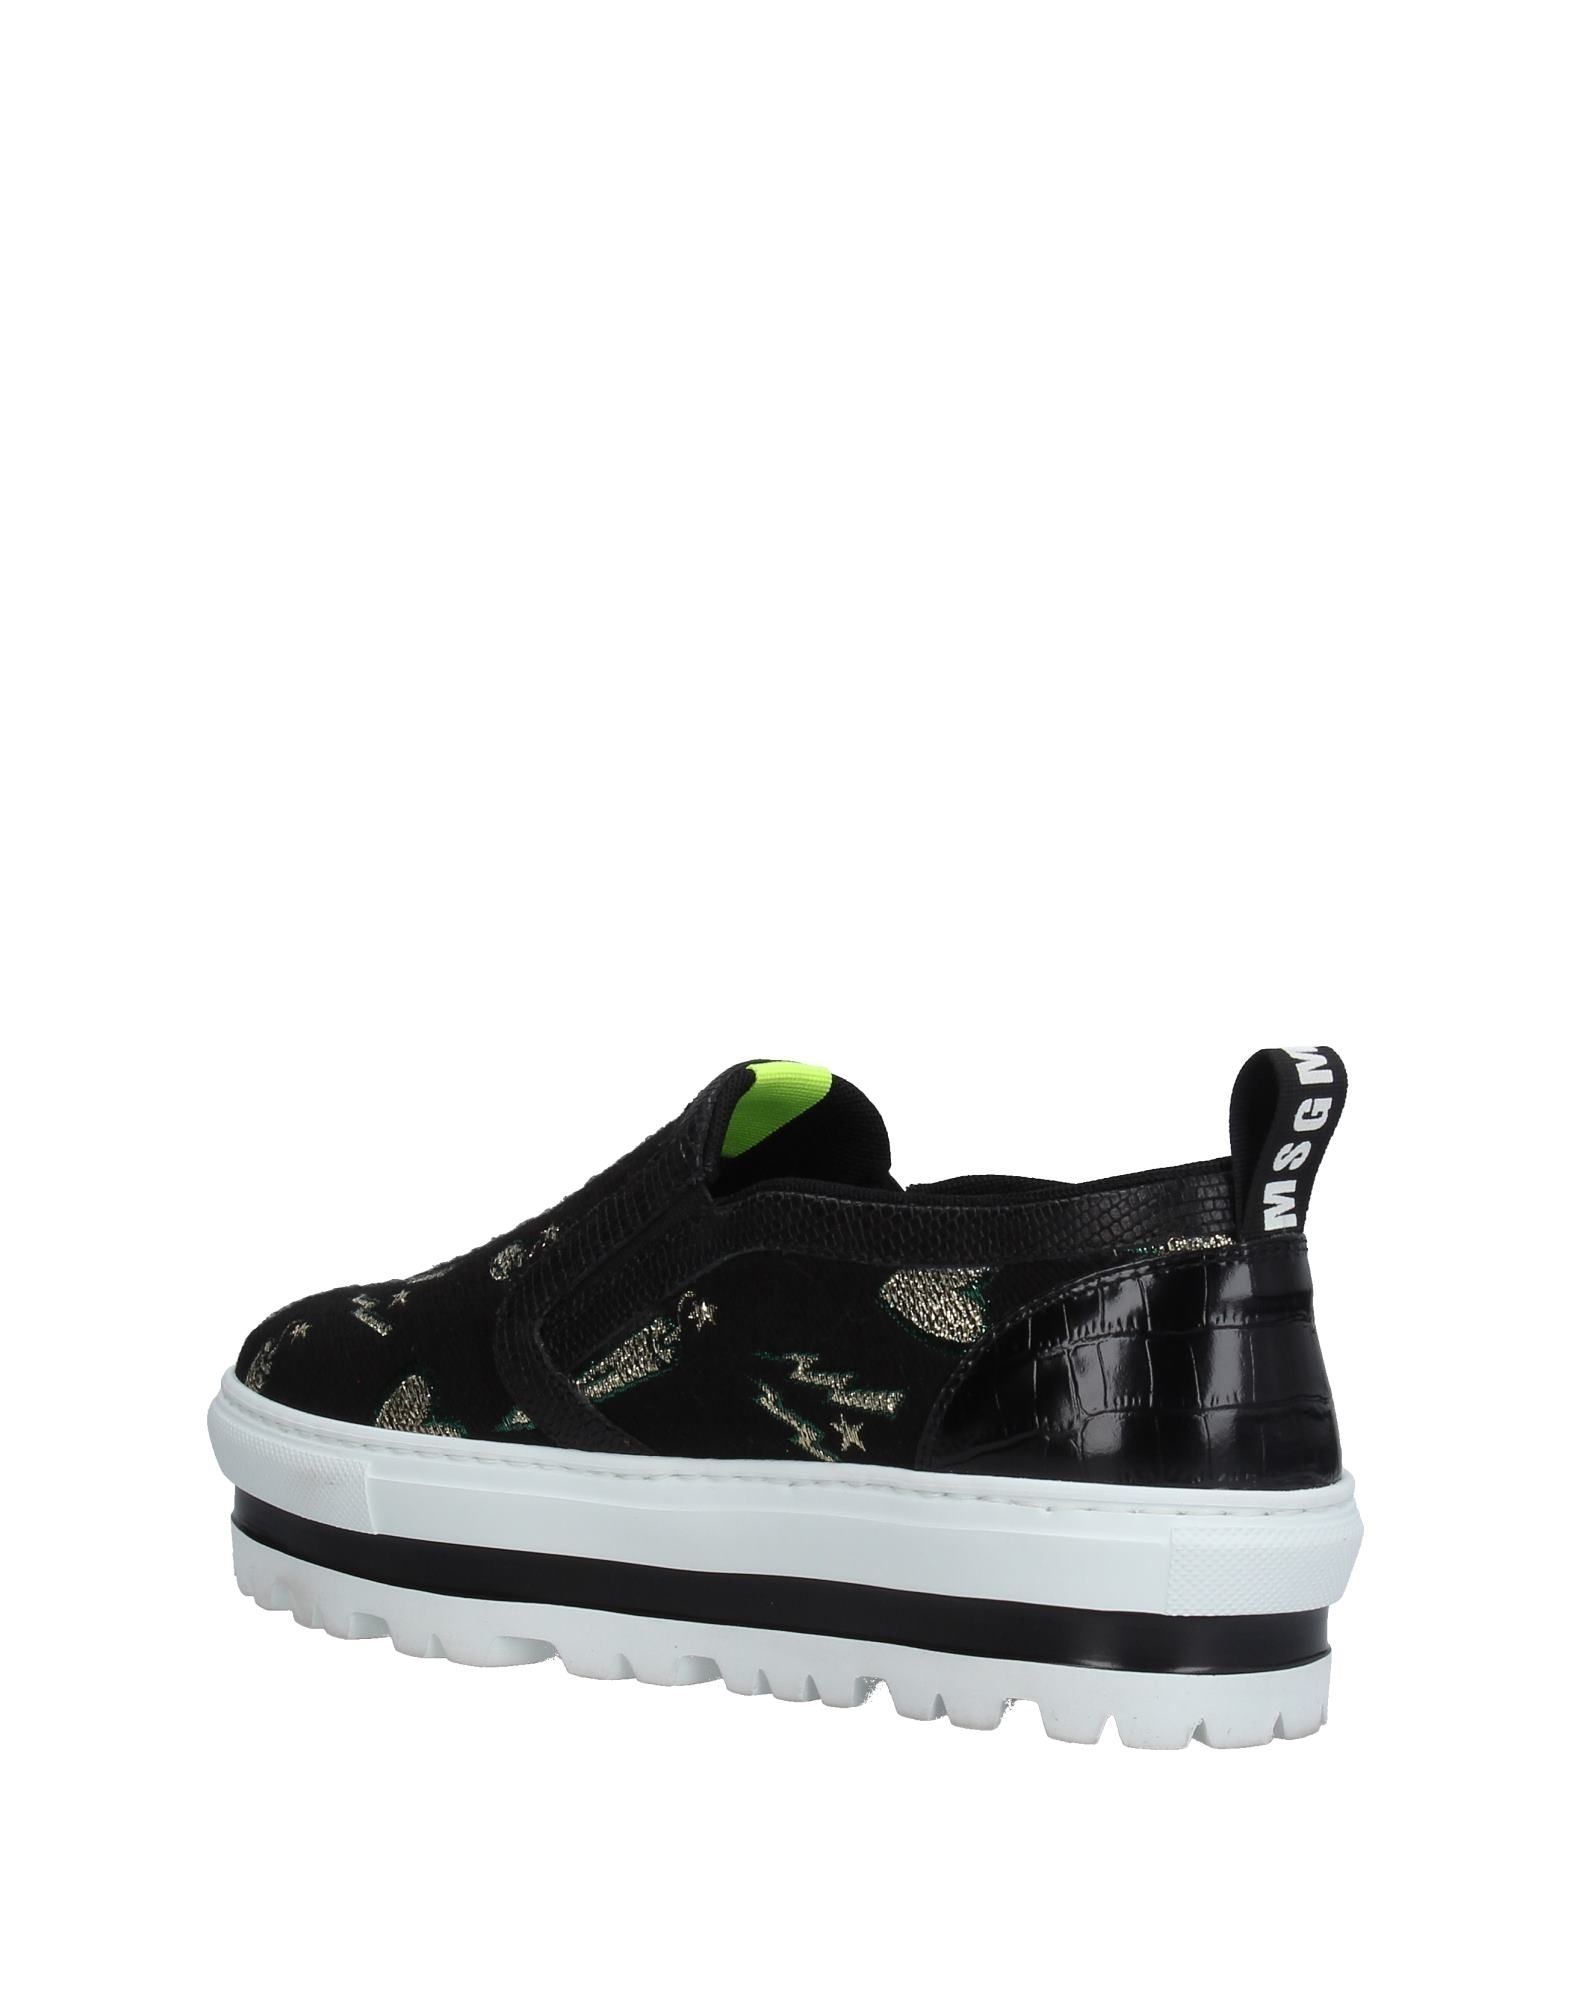 Msgm Sneakers - - - Women Msgm Sneakers online on  United Kingdom - 11236239UP 46d22d